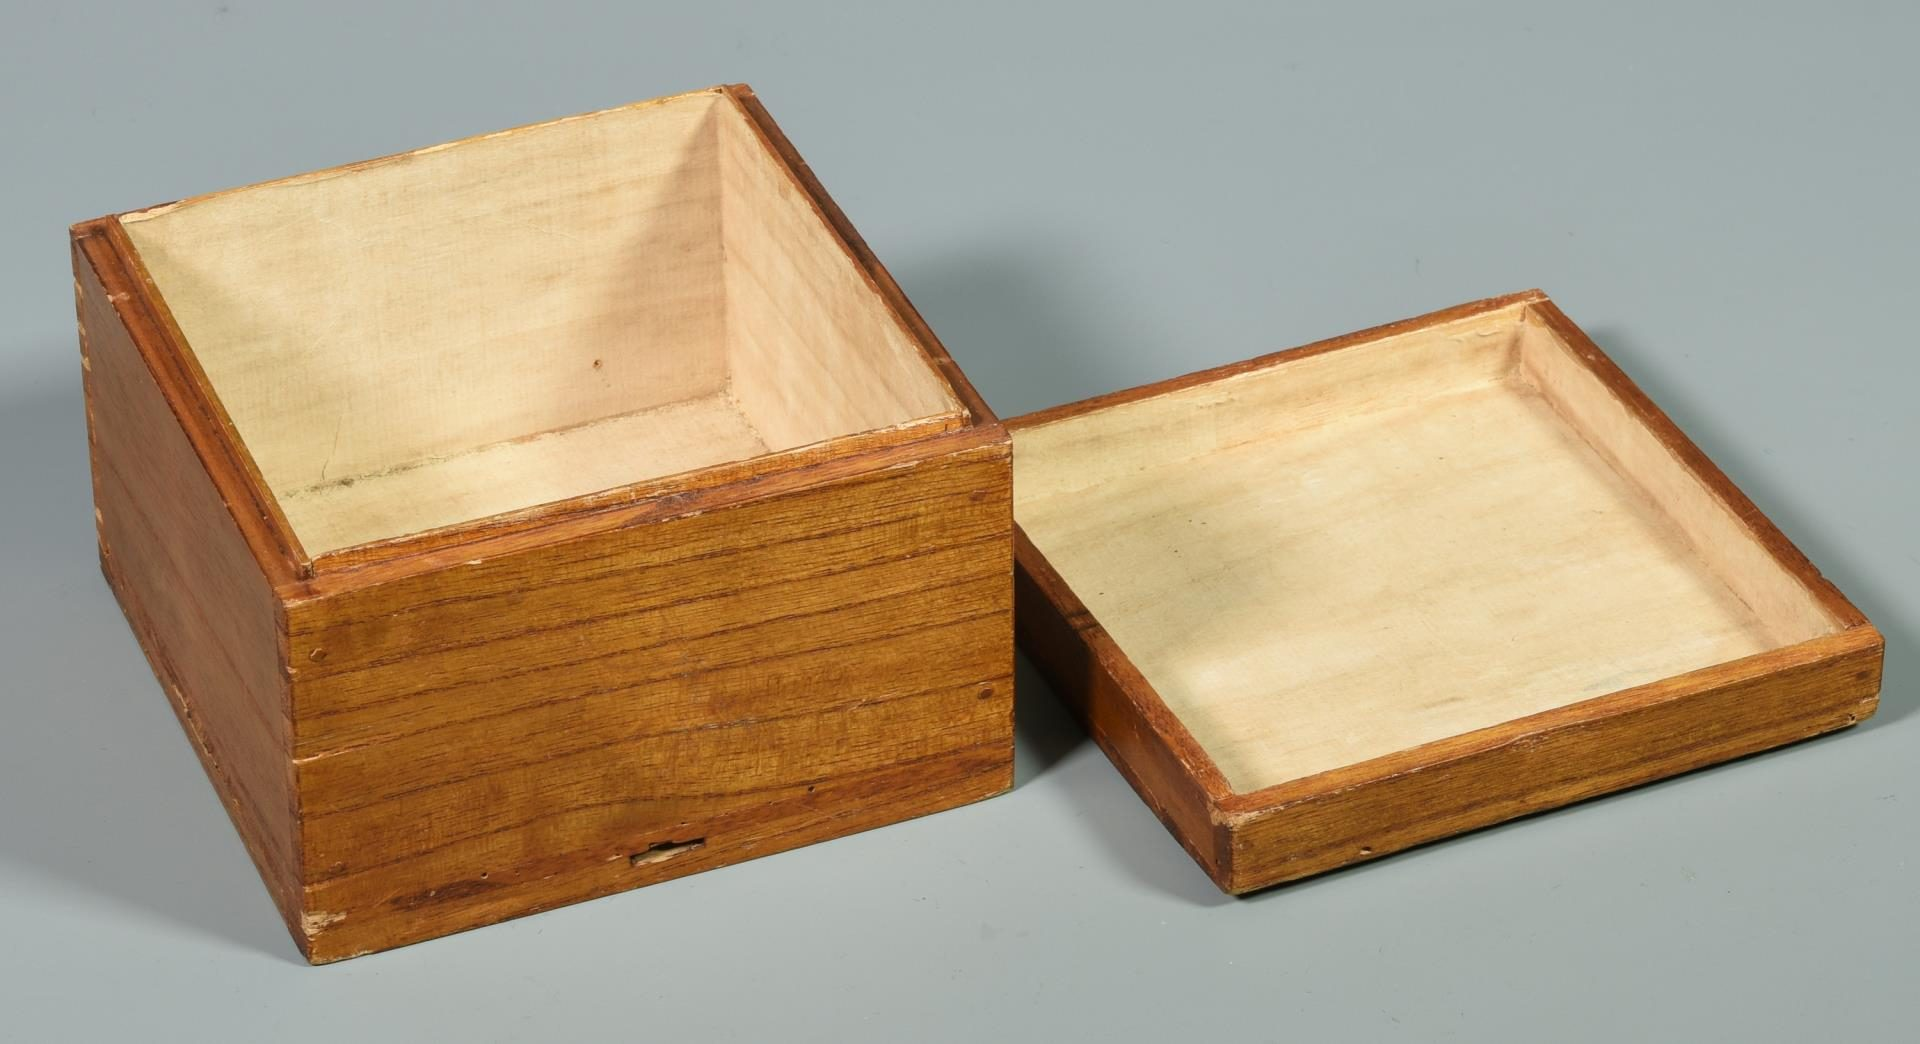 Lot 124: 19th/early 20th c. Asian Items includ. Shomosai Sake Cups